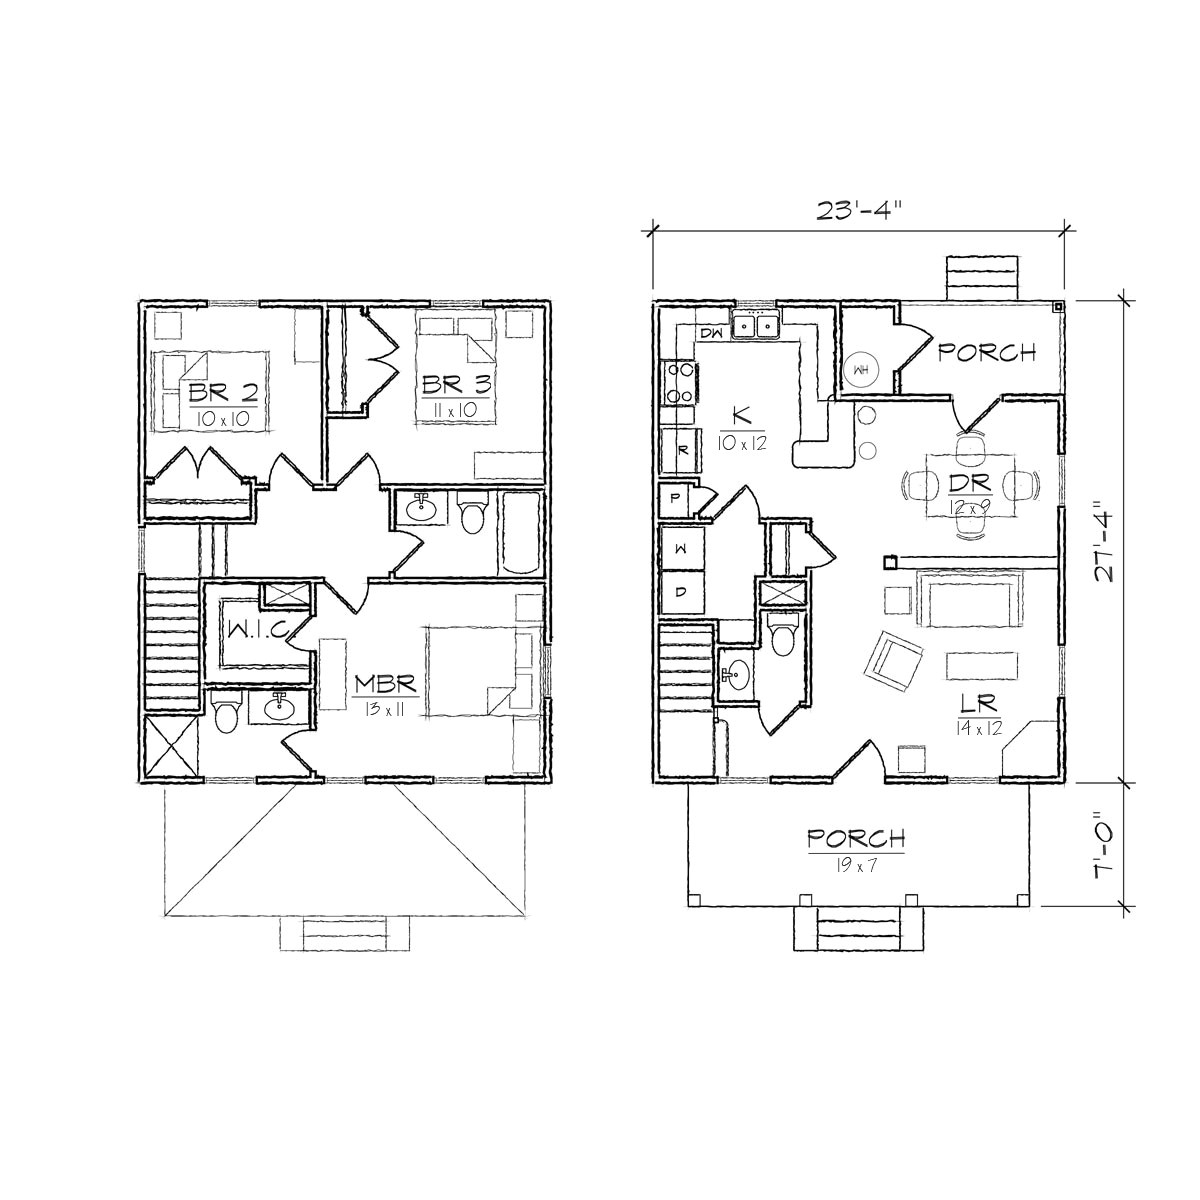 Small Foursquare House Plans Exceptional Square Home Plans 1 Small Square House Floor